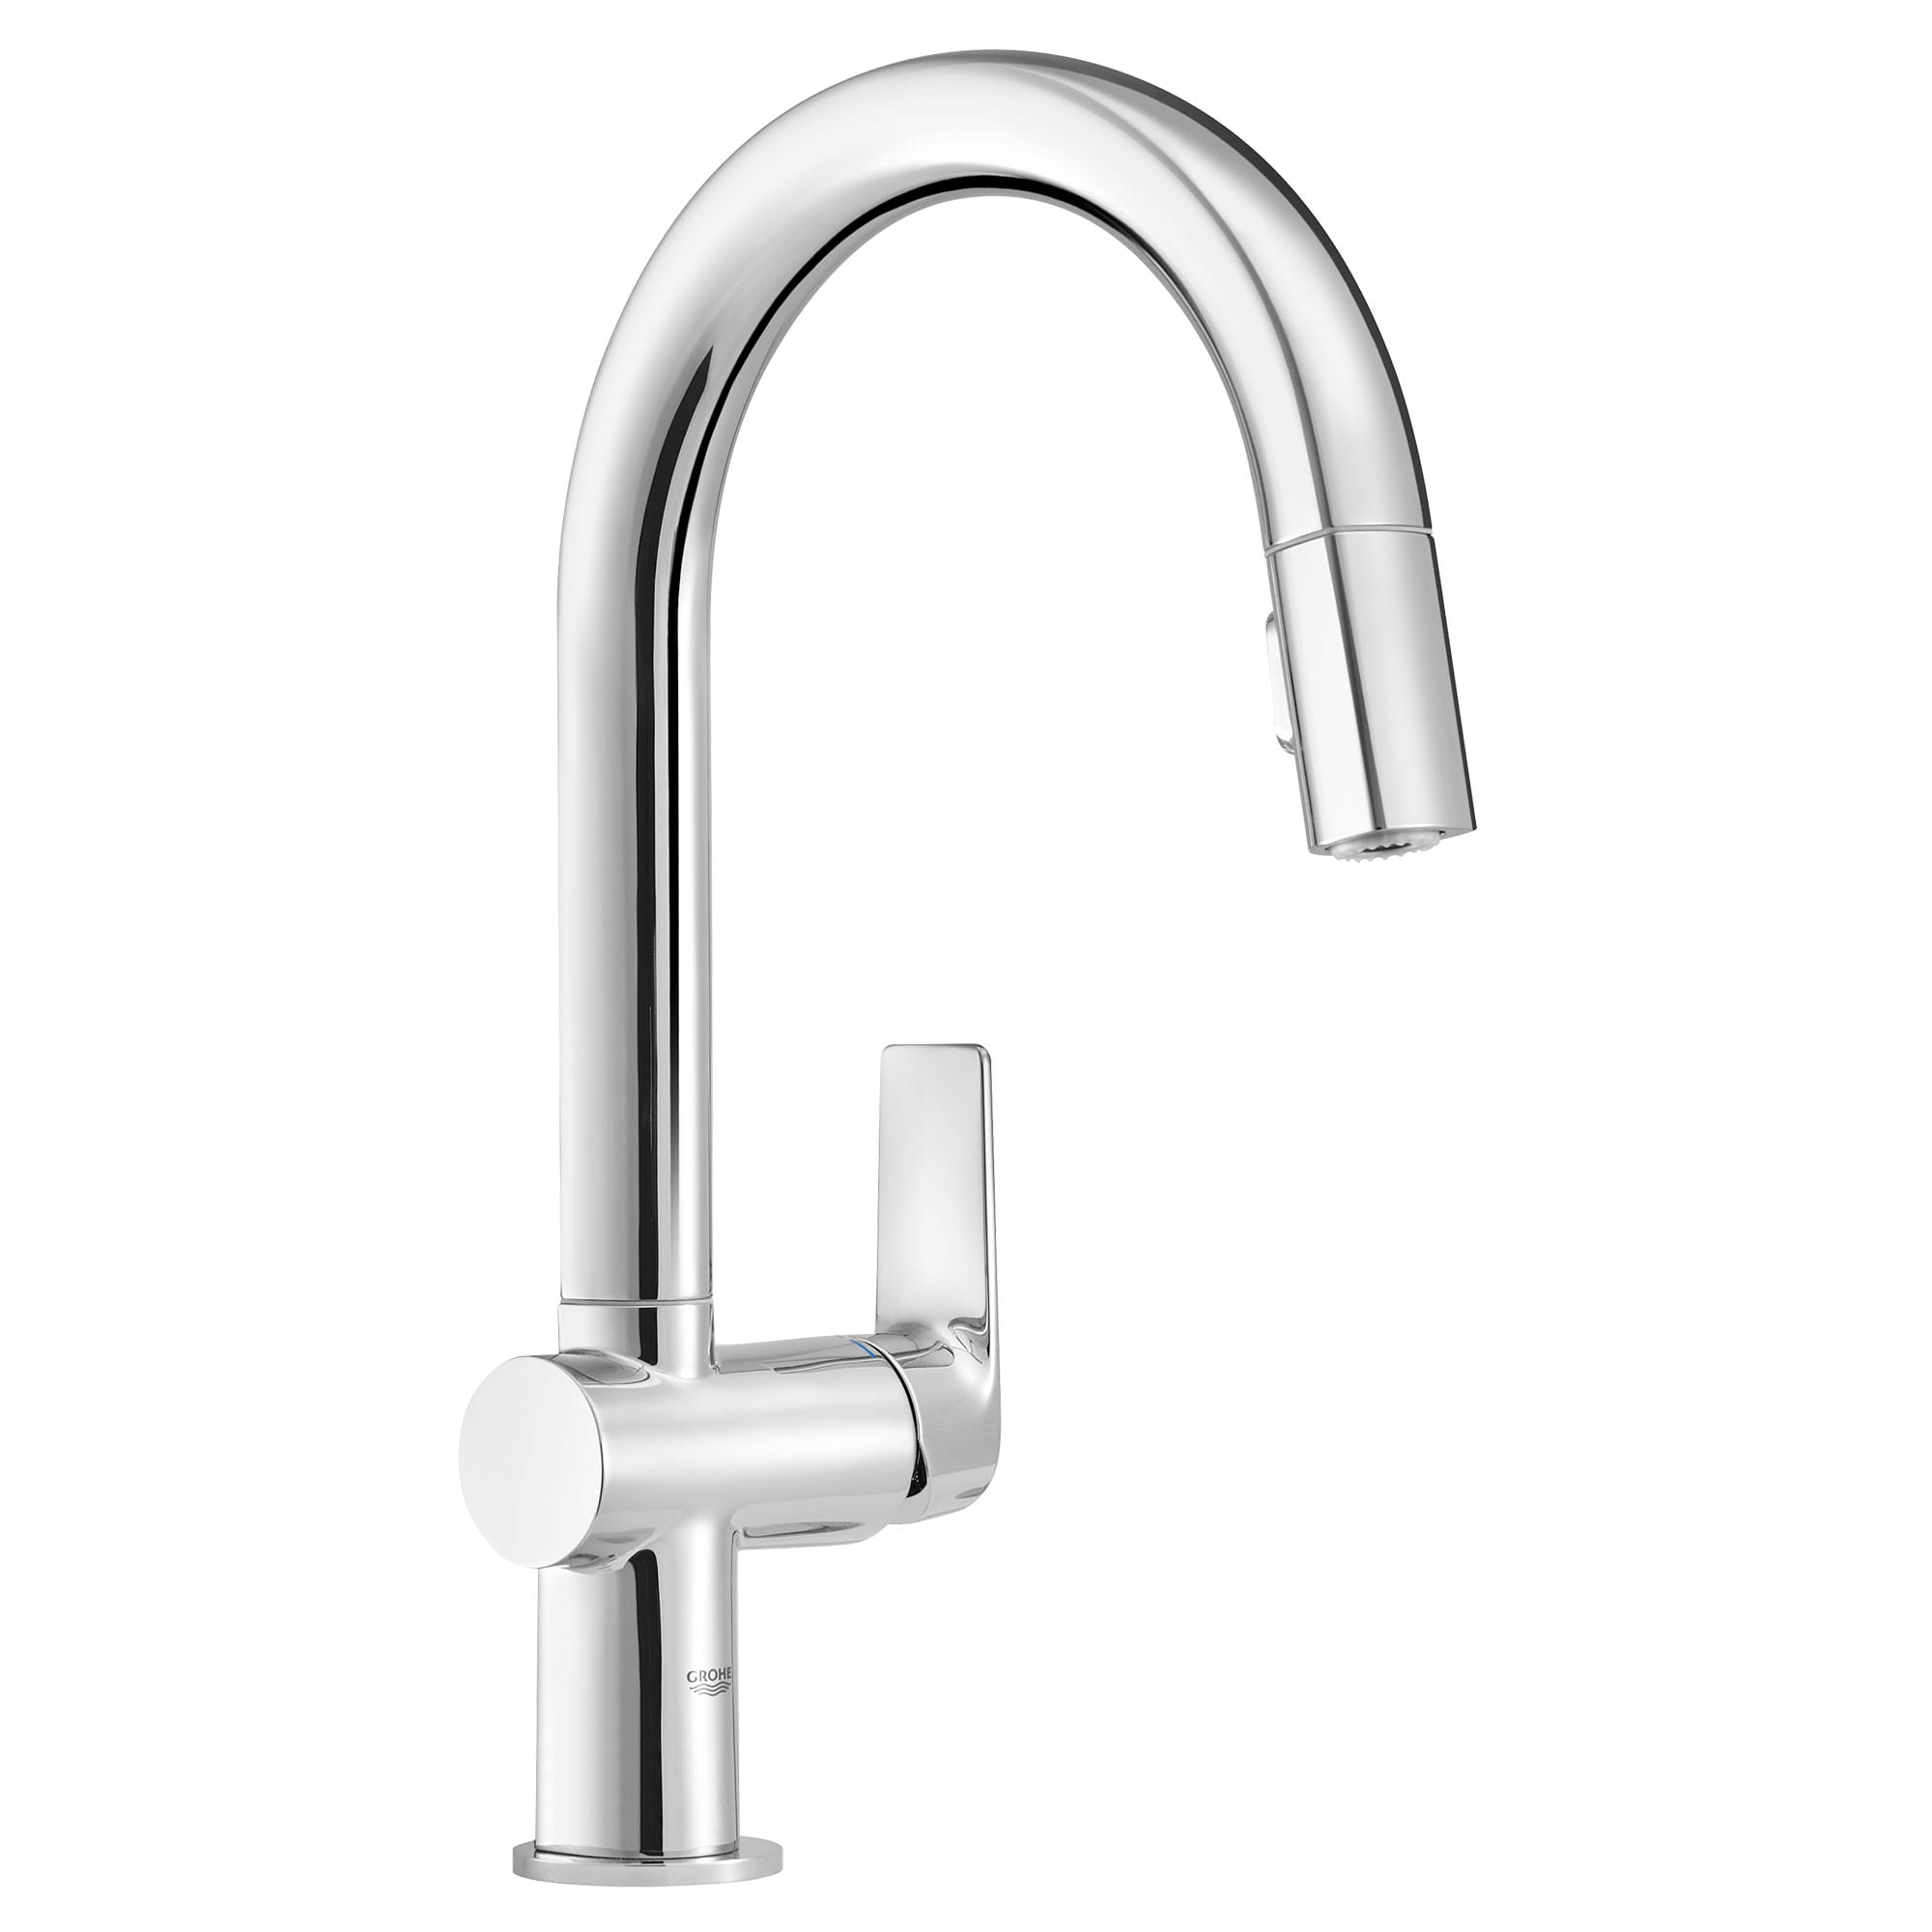 Grohe 30377000fc Starlight Chrome Defined Pull Down Kitchen Faucet And Foot Control Adapter Kit Combo With 2 Function Toggle Sprayer Faucetdirect Com